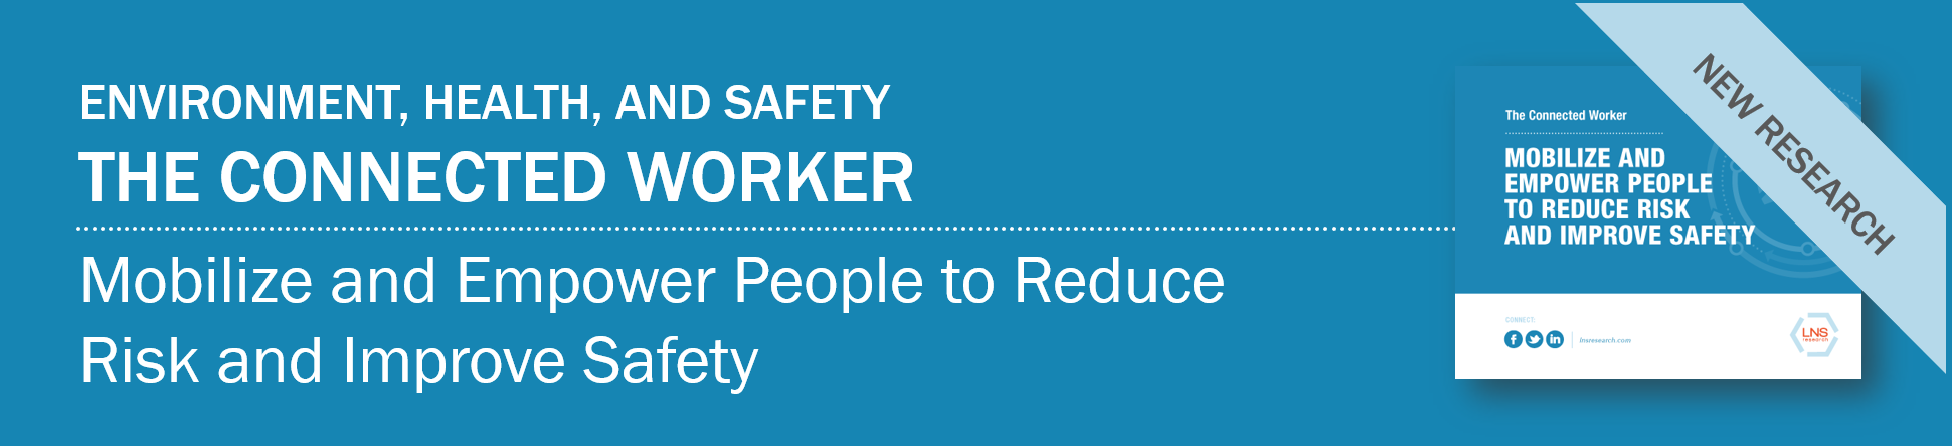 Ebook: The Connected Worker: Mobilize and Empower People to Reduce Risk and Empower Safety